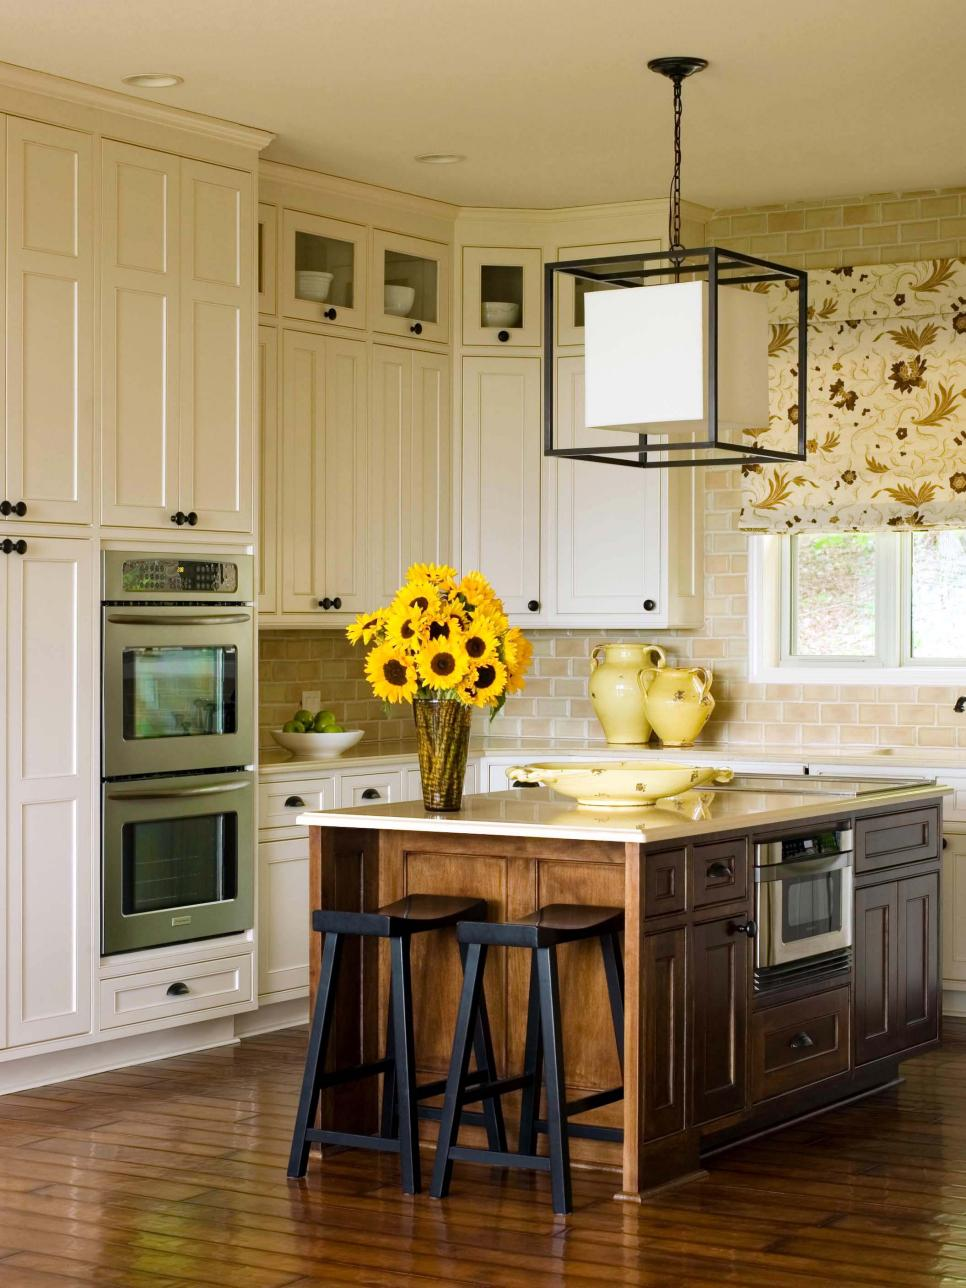 how to reface cabinets with laminate, reface kitchen